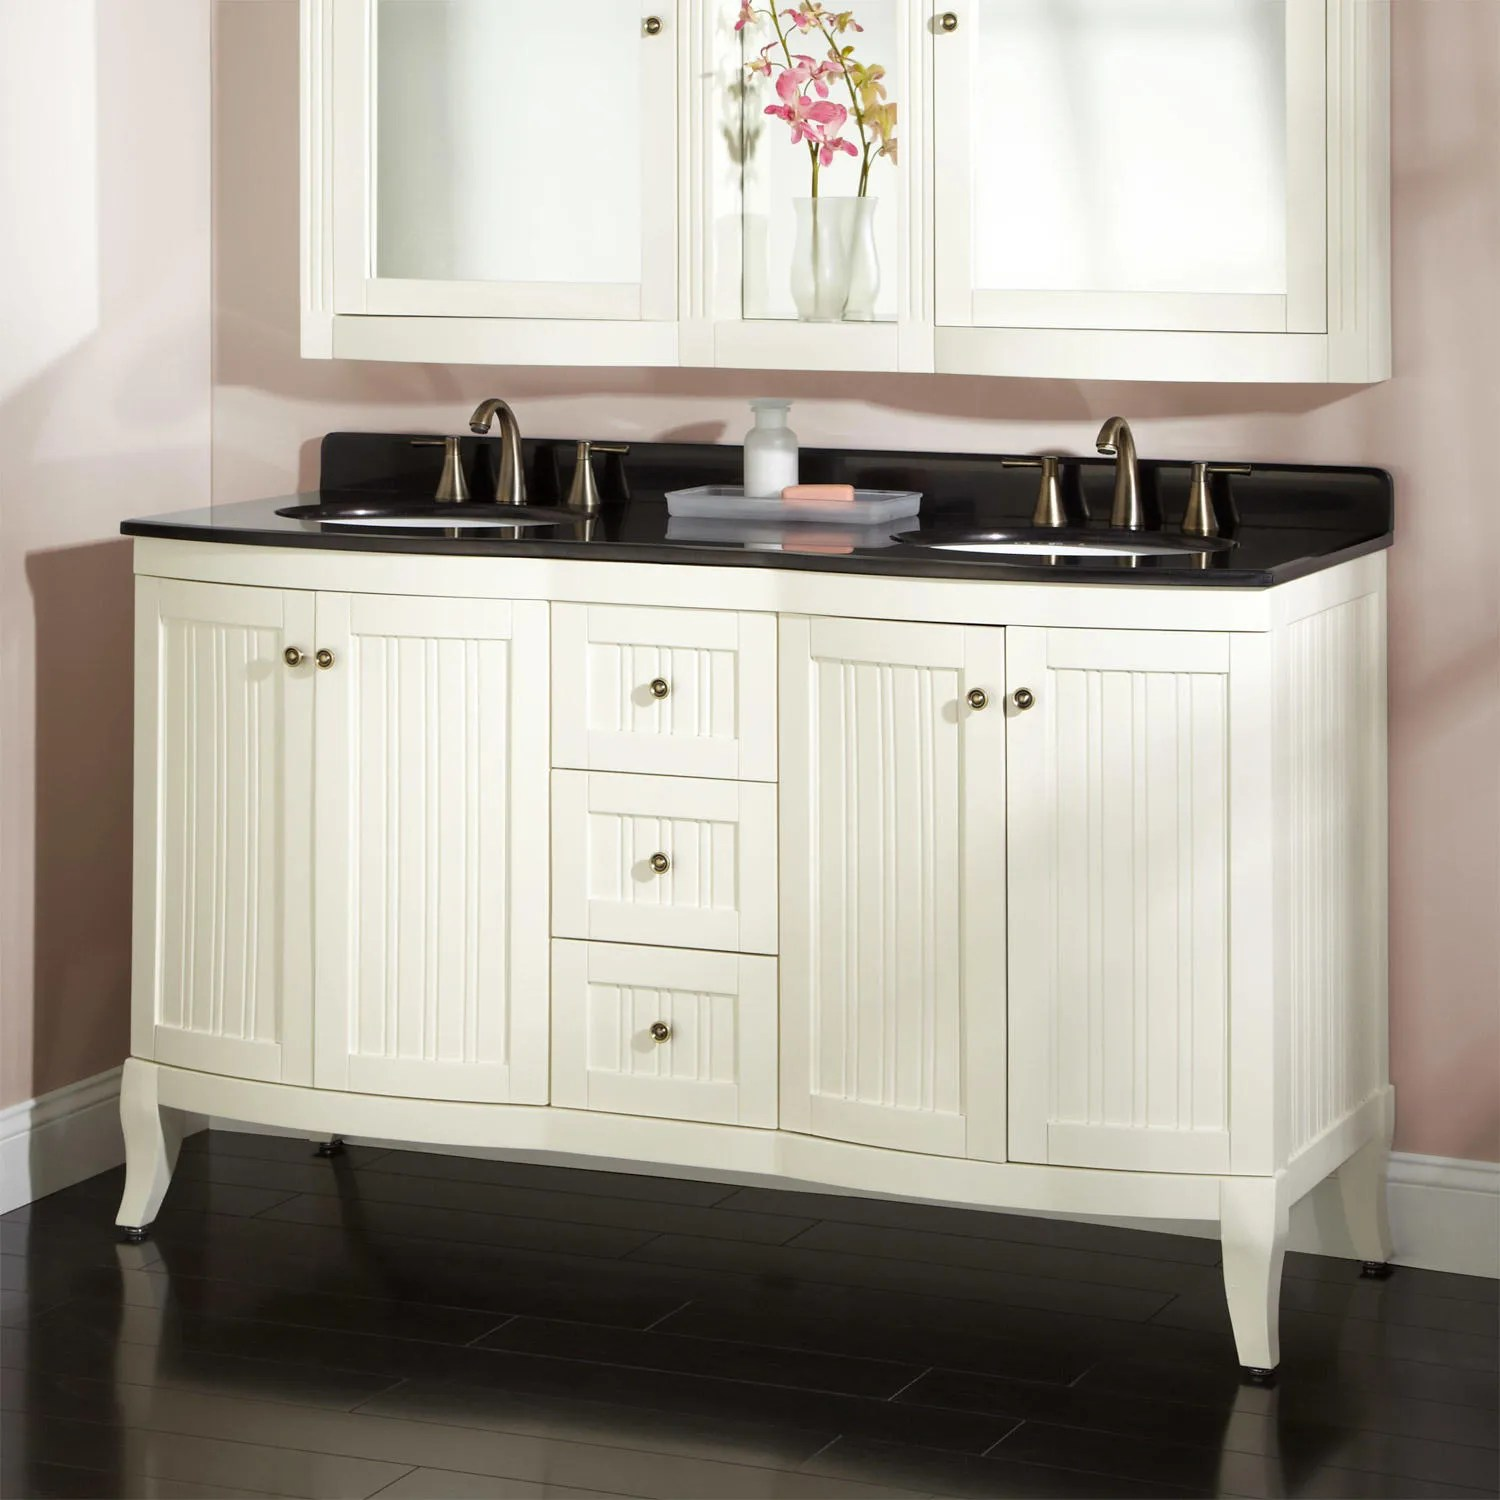 Ikea Kitchen Cabinet Child Locks Ideas For A Diy Bathroom Vanity Better Homes And Gardens